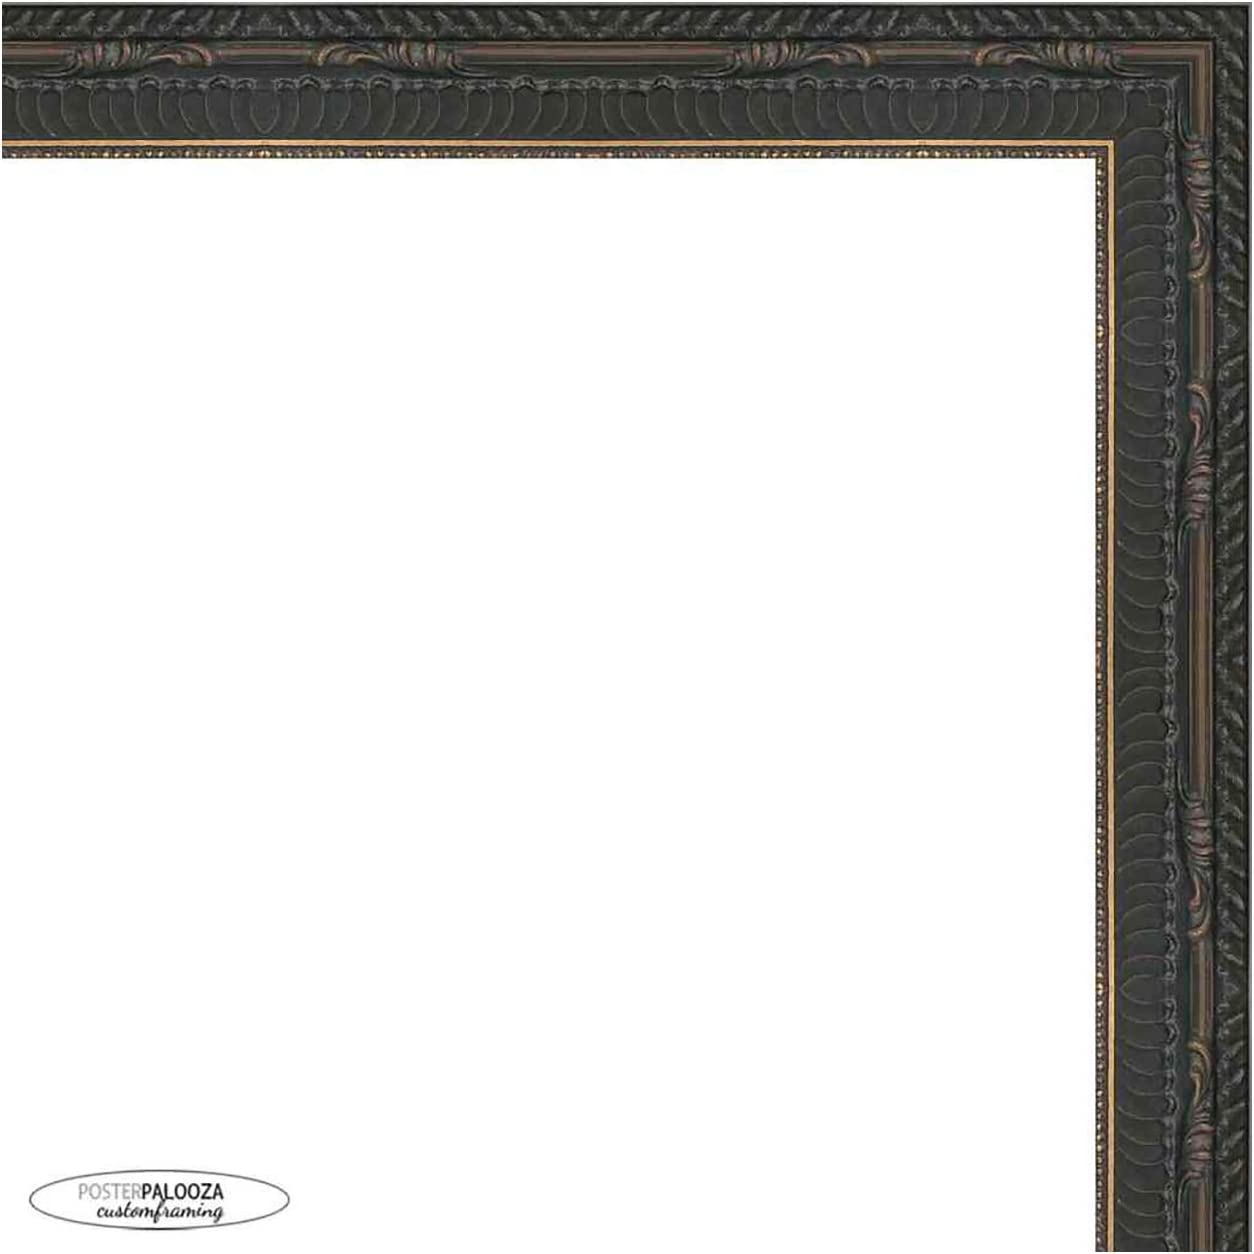 Boston Mall Poster Palooza 40x28 Ornate It is very popular Complete Picture UV with Wood Frame